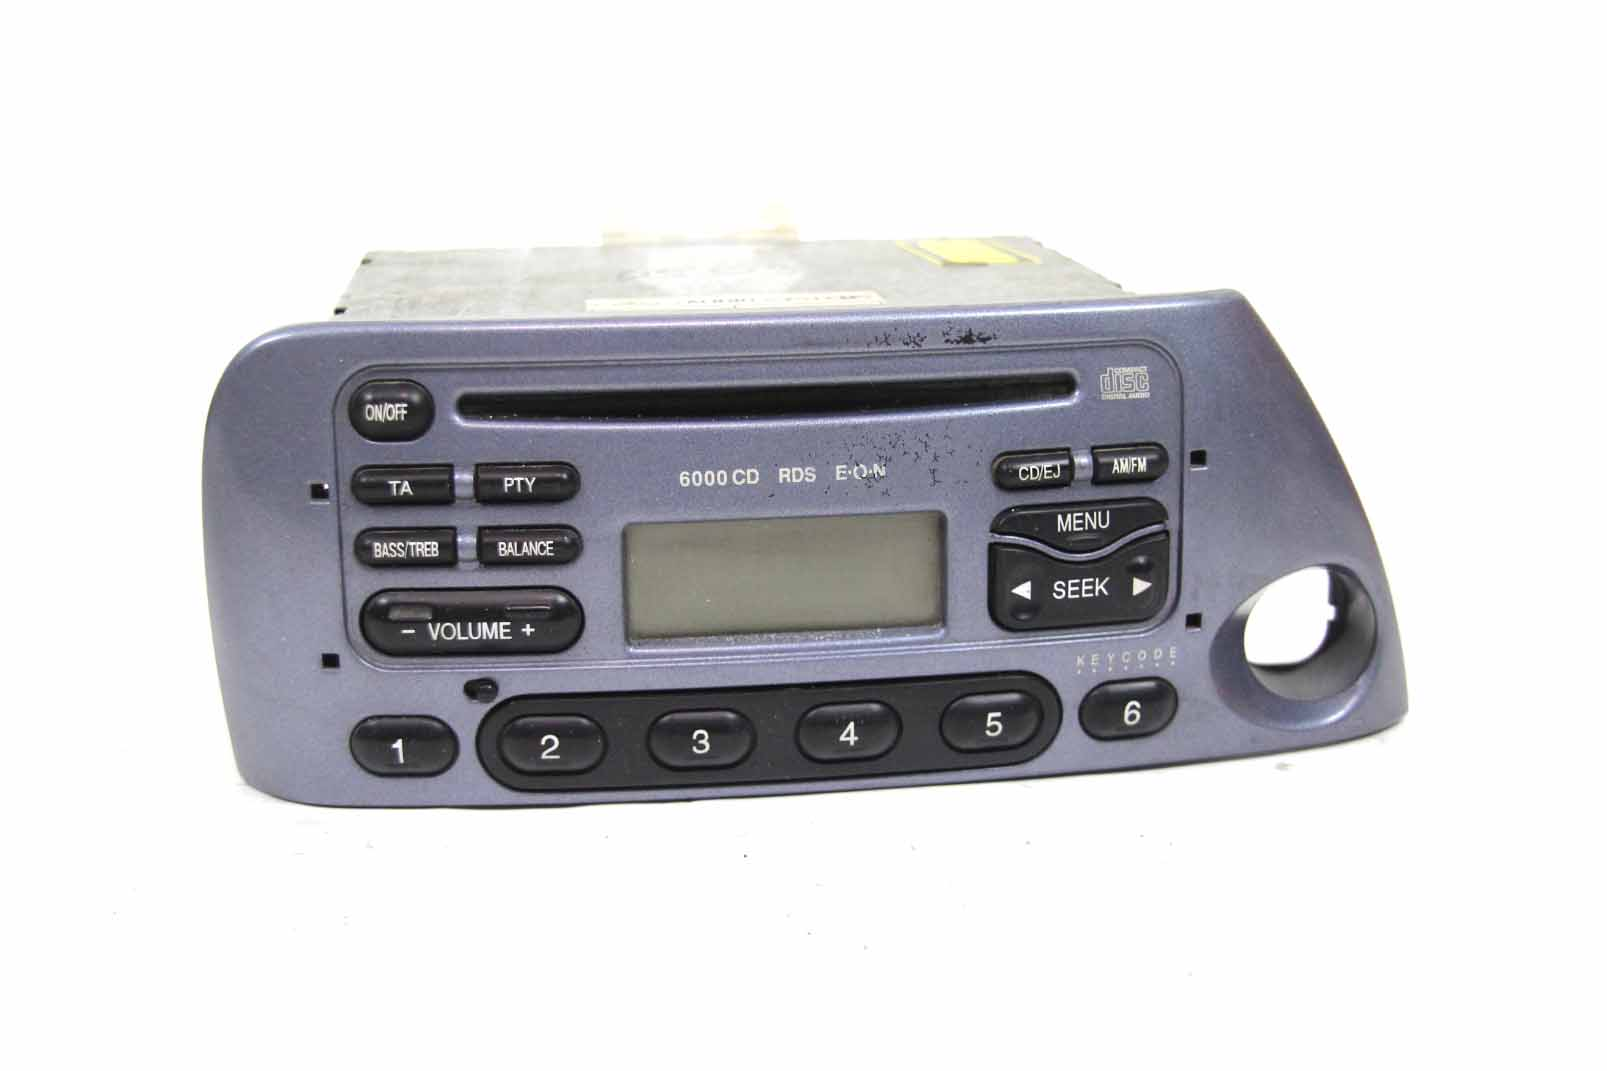 ford ka autoradio 6000 cd rds e o n blau metallic code 97kp 18c815 db m031079 ebay. Black Bedroom Furniture Sets. Home Design Ideas